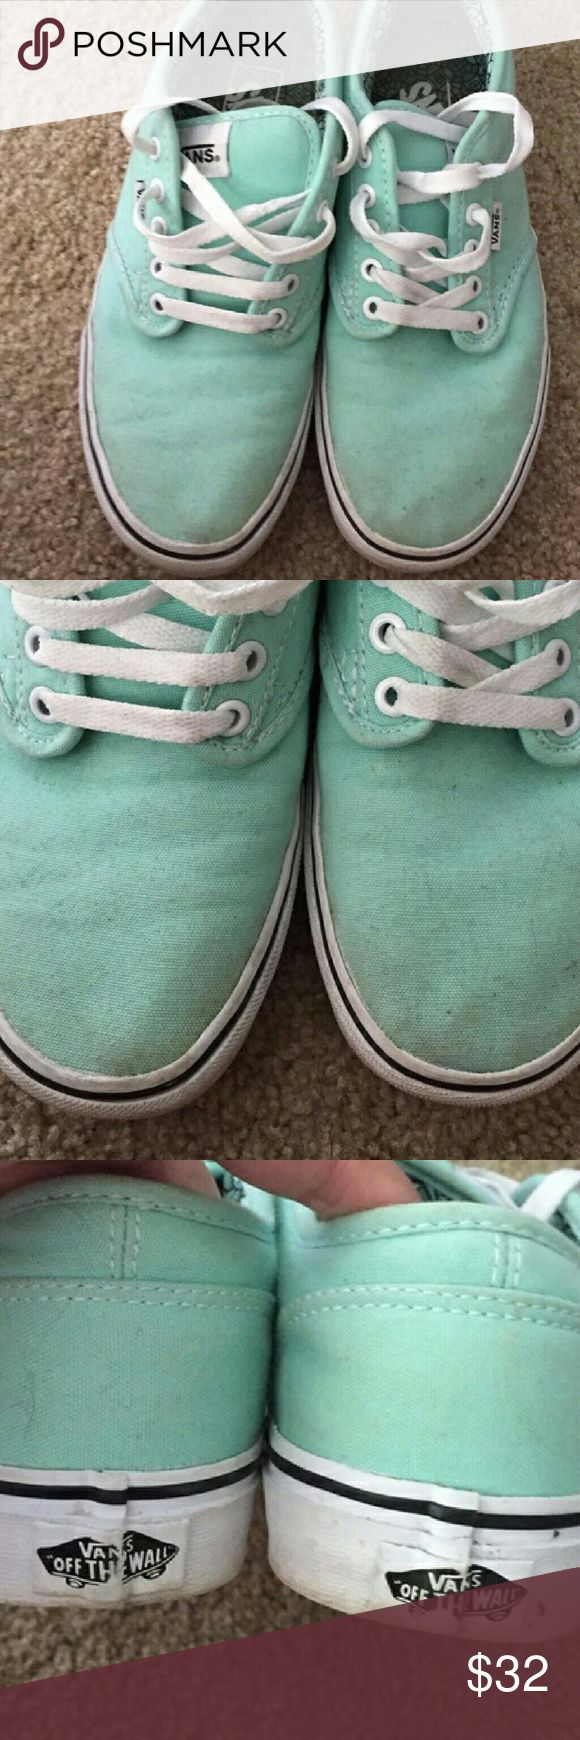 Mint Green Van's Size 8.5 These are in good used condition! I purchased them from this website a long time ago and have yet to wear them since. I am just hoping to sell at this point and am open to offers. Vans Shoes